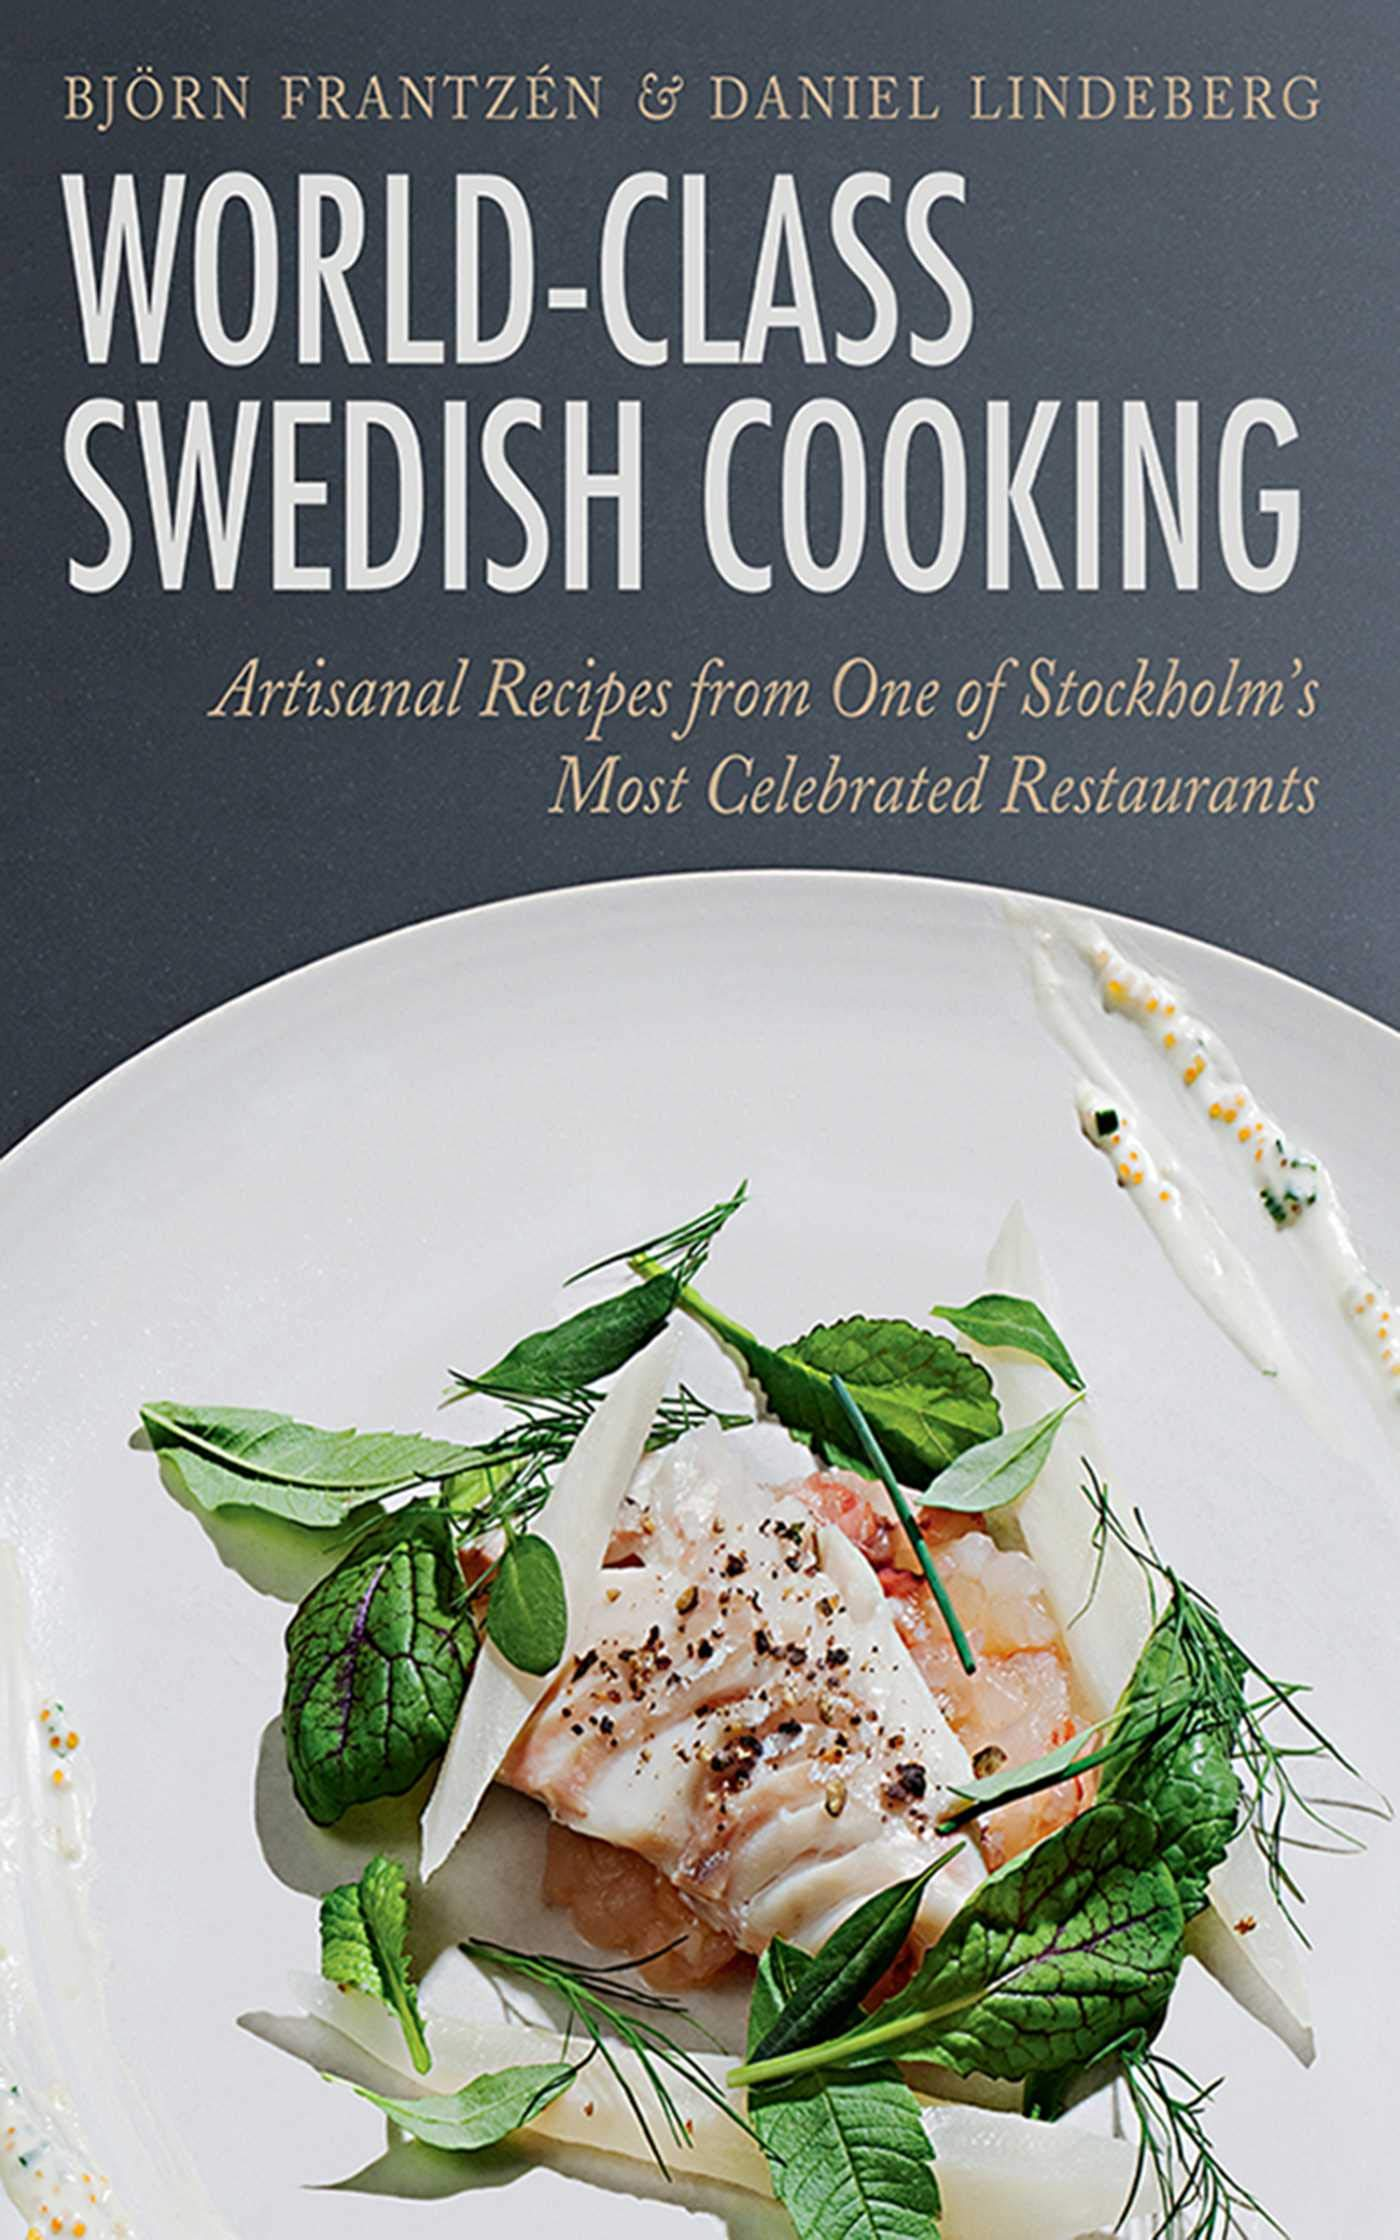 World Class Swedish Cooking  Artisanal Recipes From One Of Stockholm's Most Celebrated Restaurants